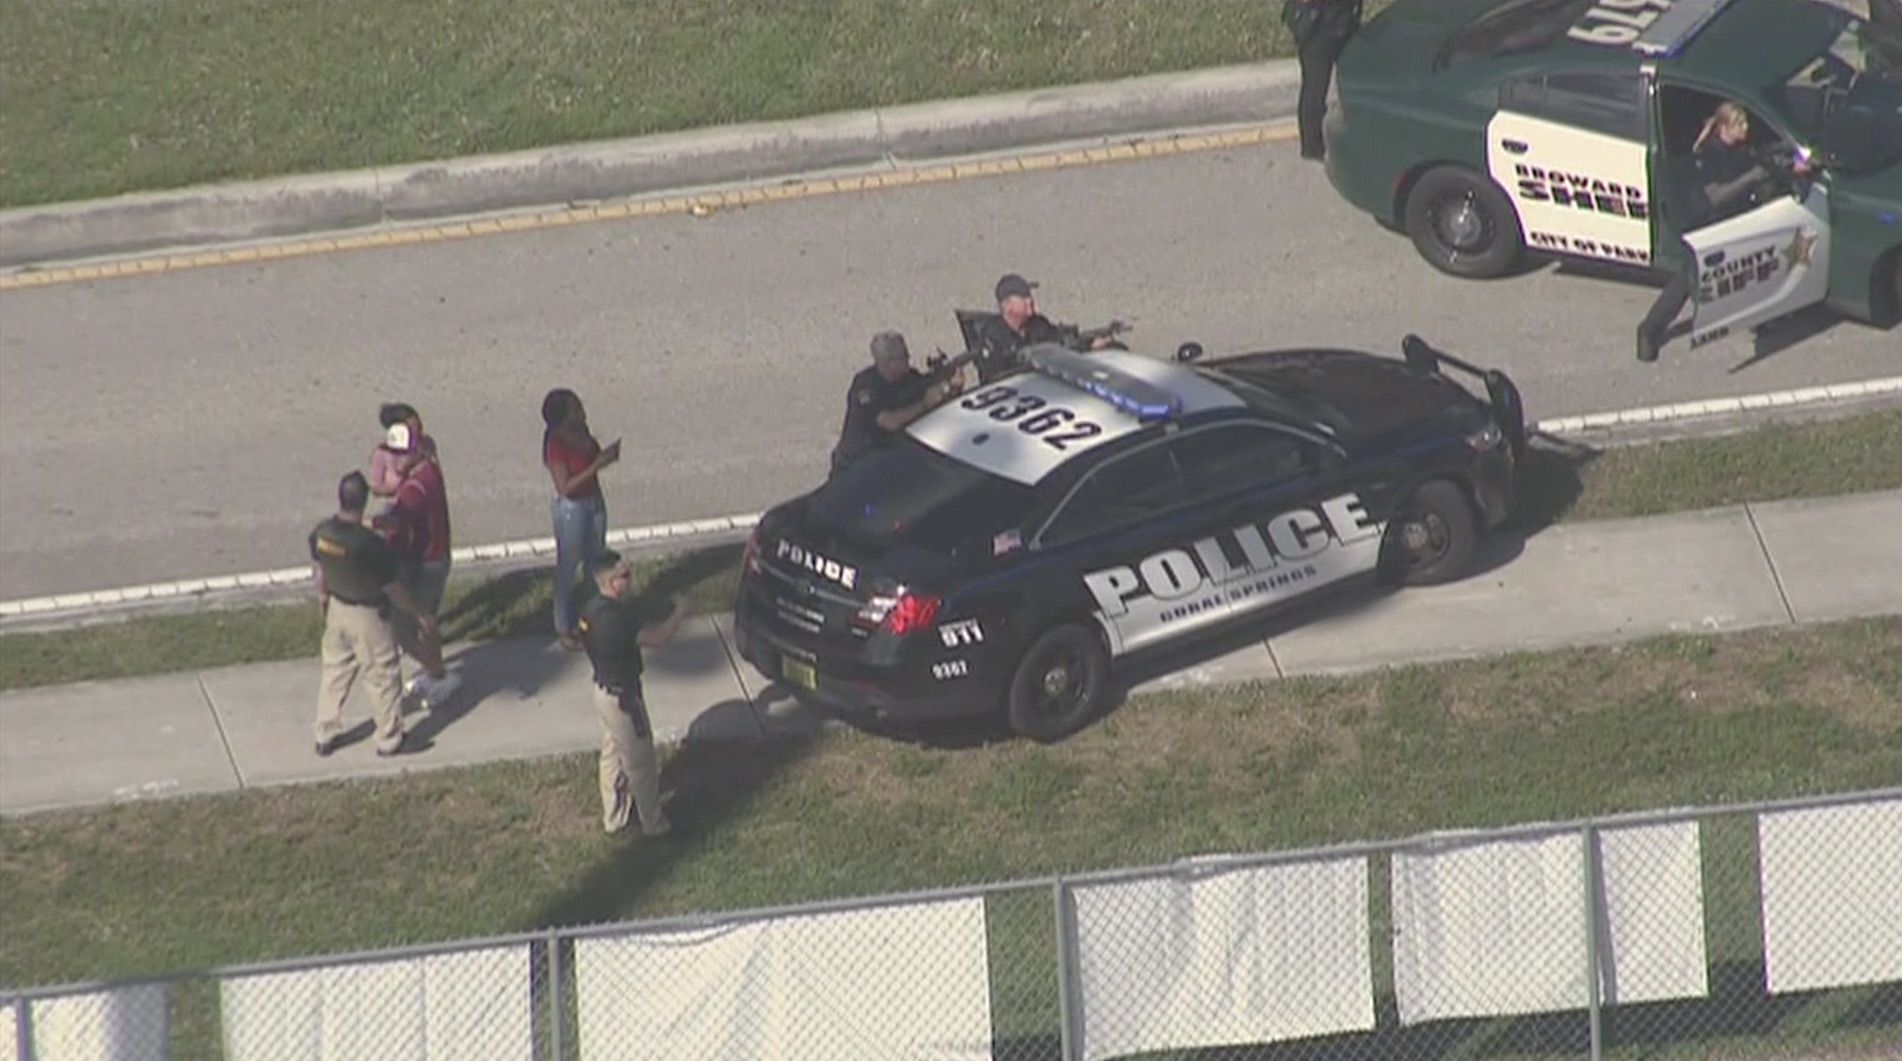 "<div class=""meta image-caption""><div class=""origin-logo origin-image kgo""><span>kgo</span></div><span class=""caption-text"">Authorities are responding to reports of shots fired at a Florida high school. (WSVN via CNN)</span></div>"